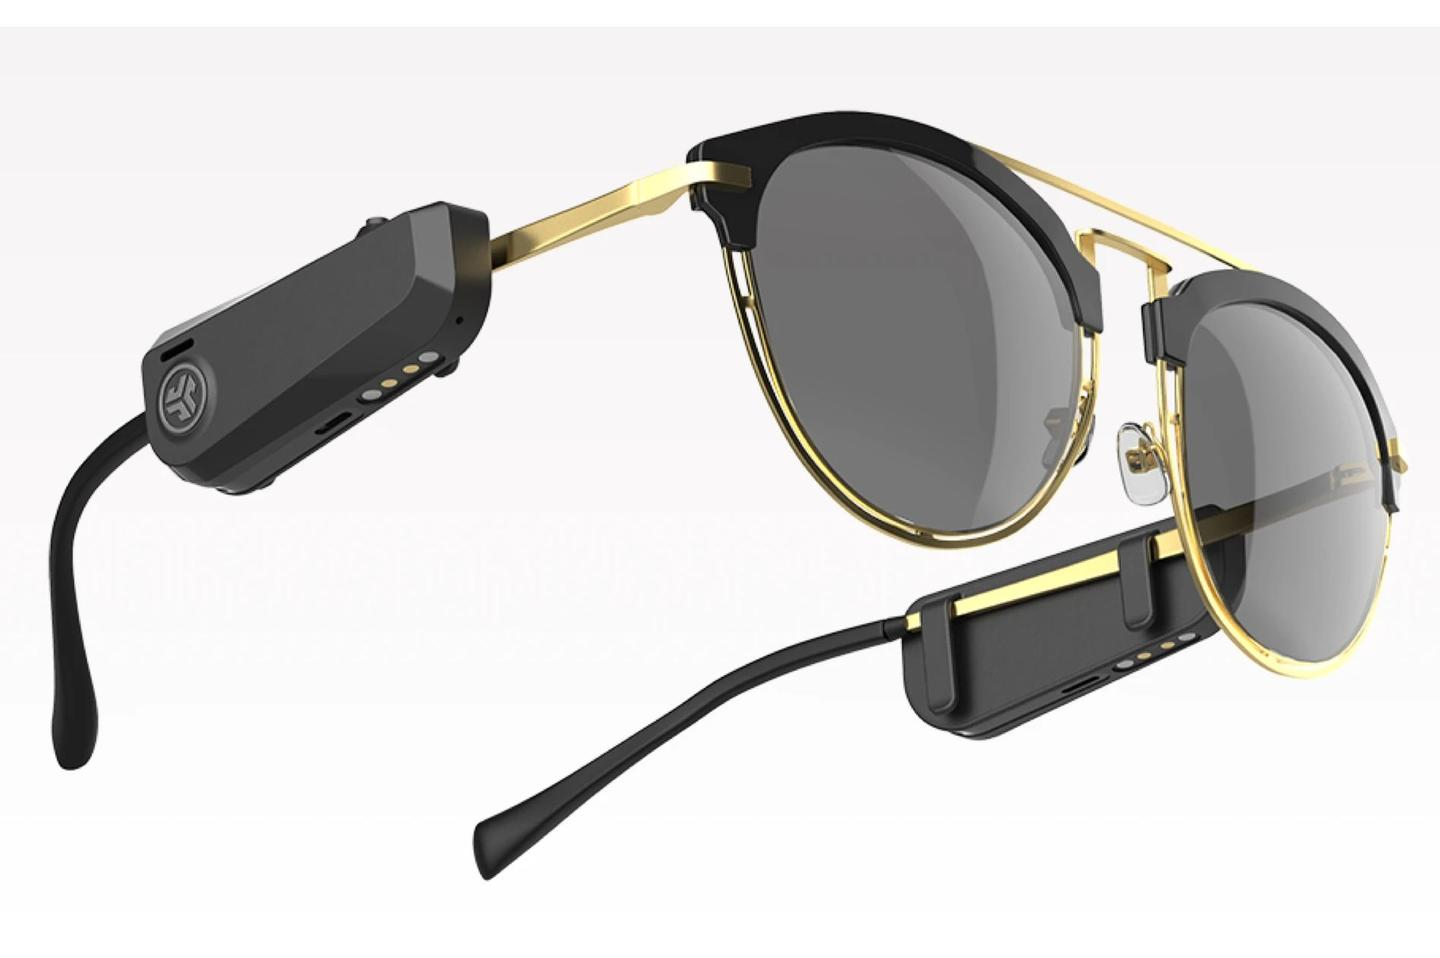 The JBuds Frames clip onto any sunglasses or eyeglasses and direct audio to the wearer's ears